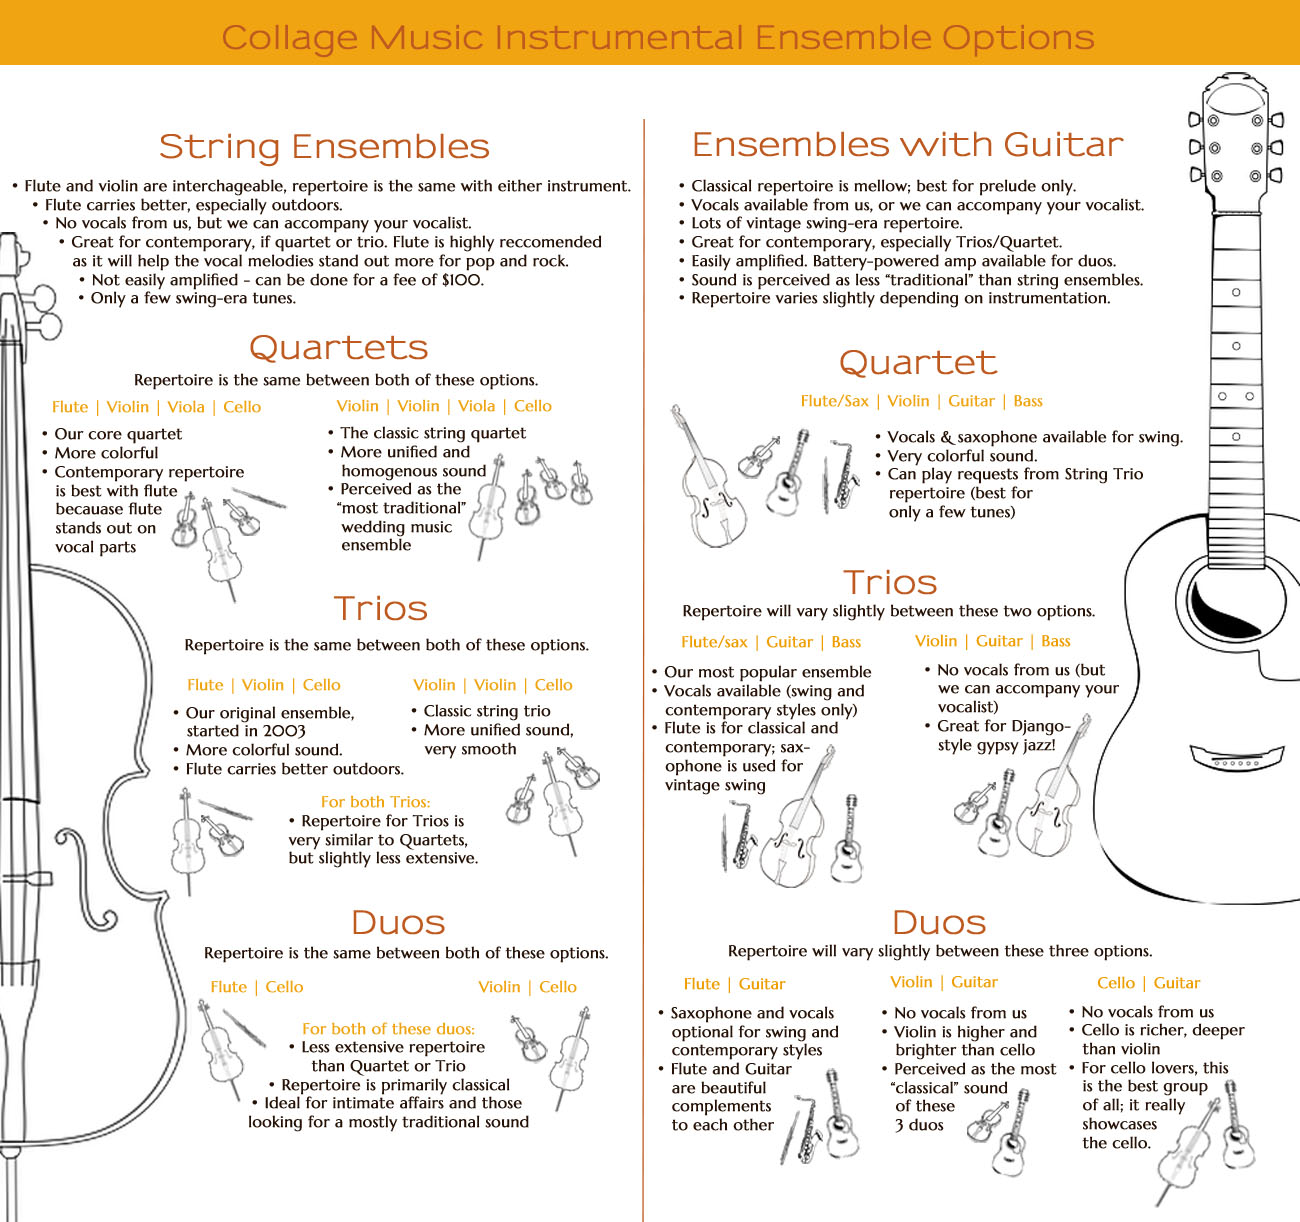 Instrumental Options Infographic